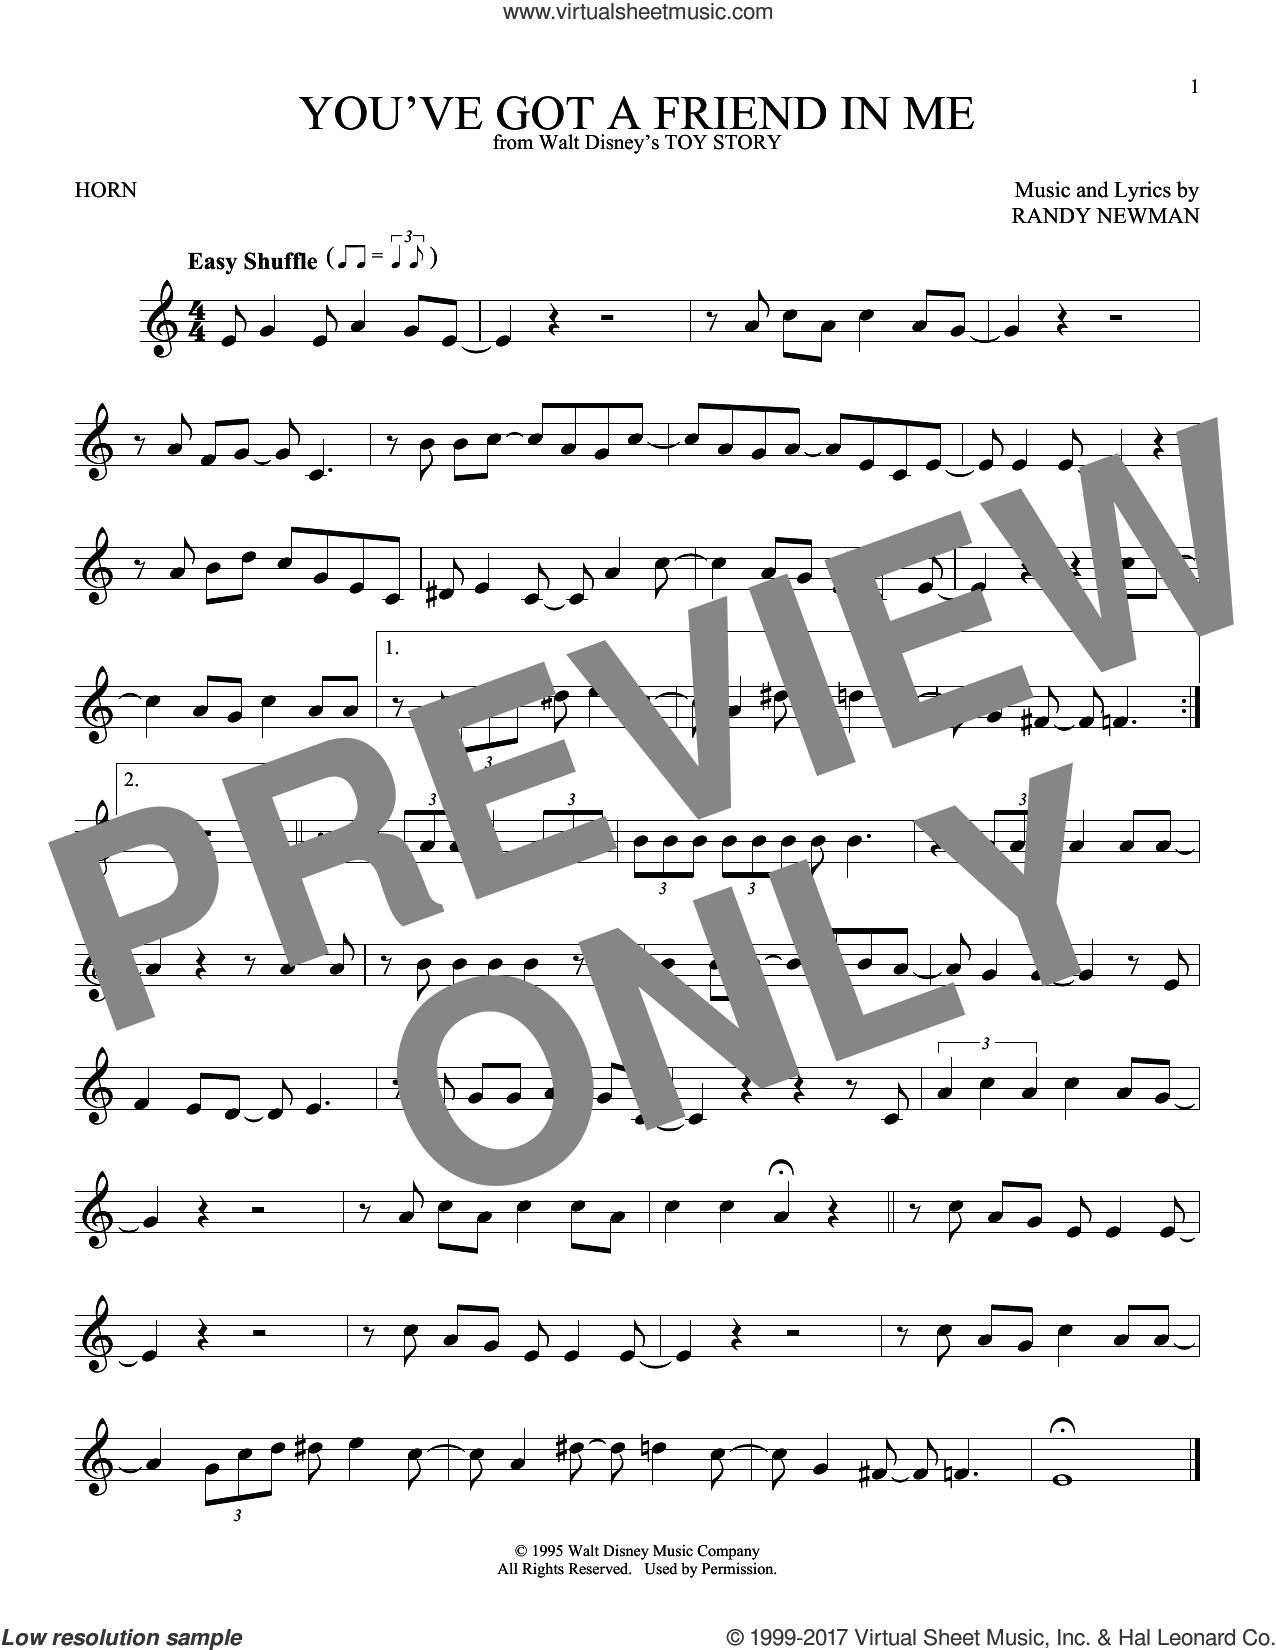 You've Got A Friend In Me sheet music for horn solo by Randy Newman. Score Image Preview.